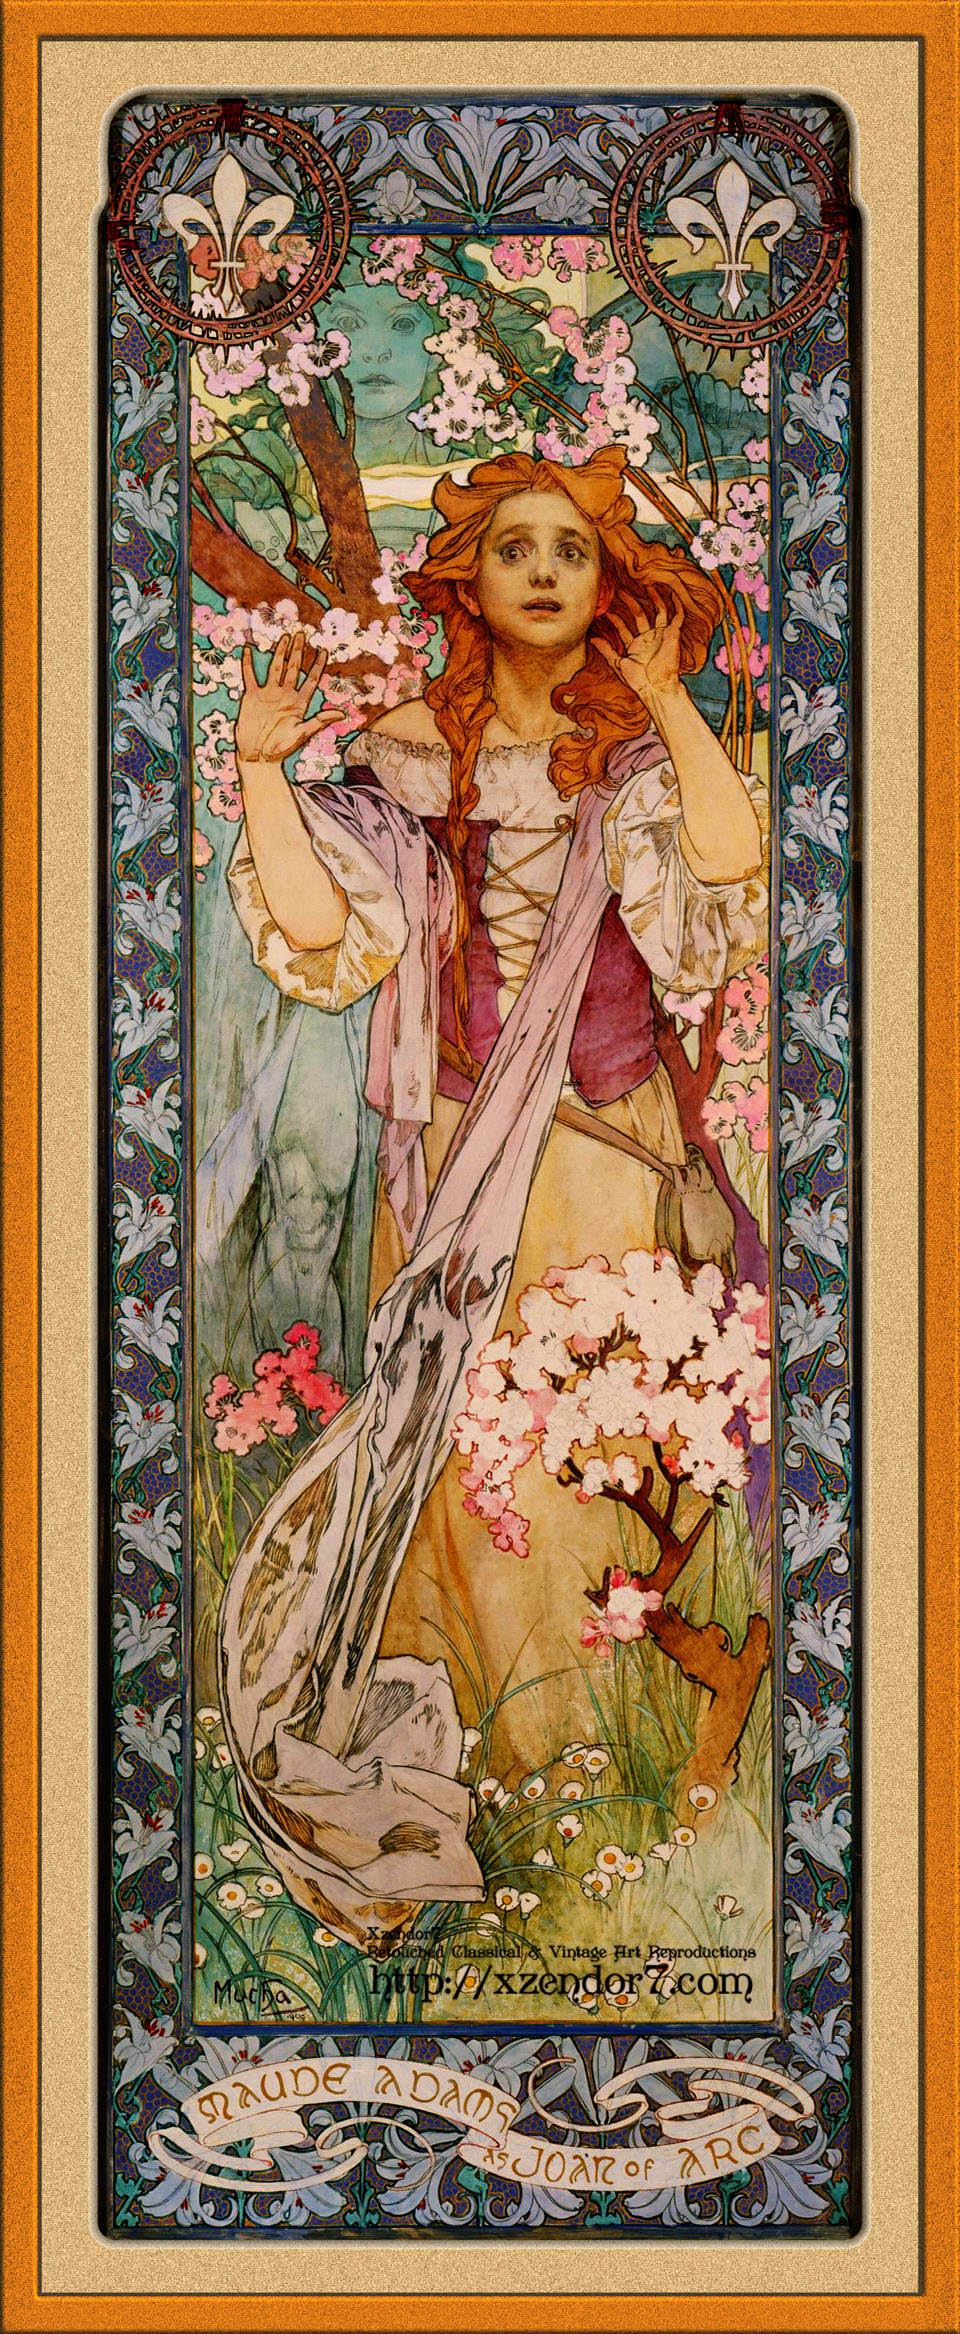 Maude Adams as Joan of Arc by Alphonse Mucha